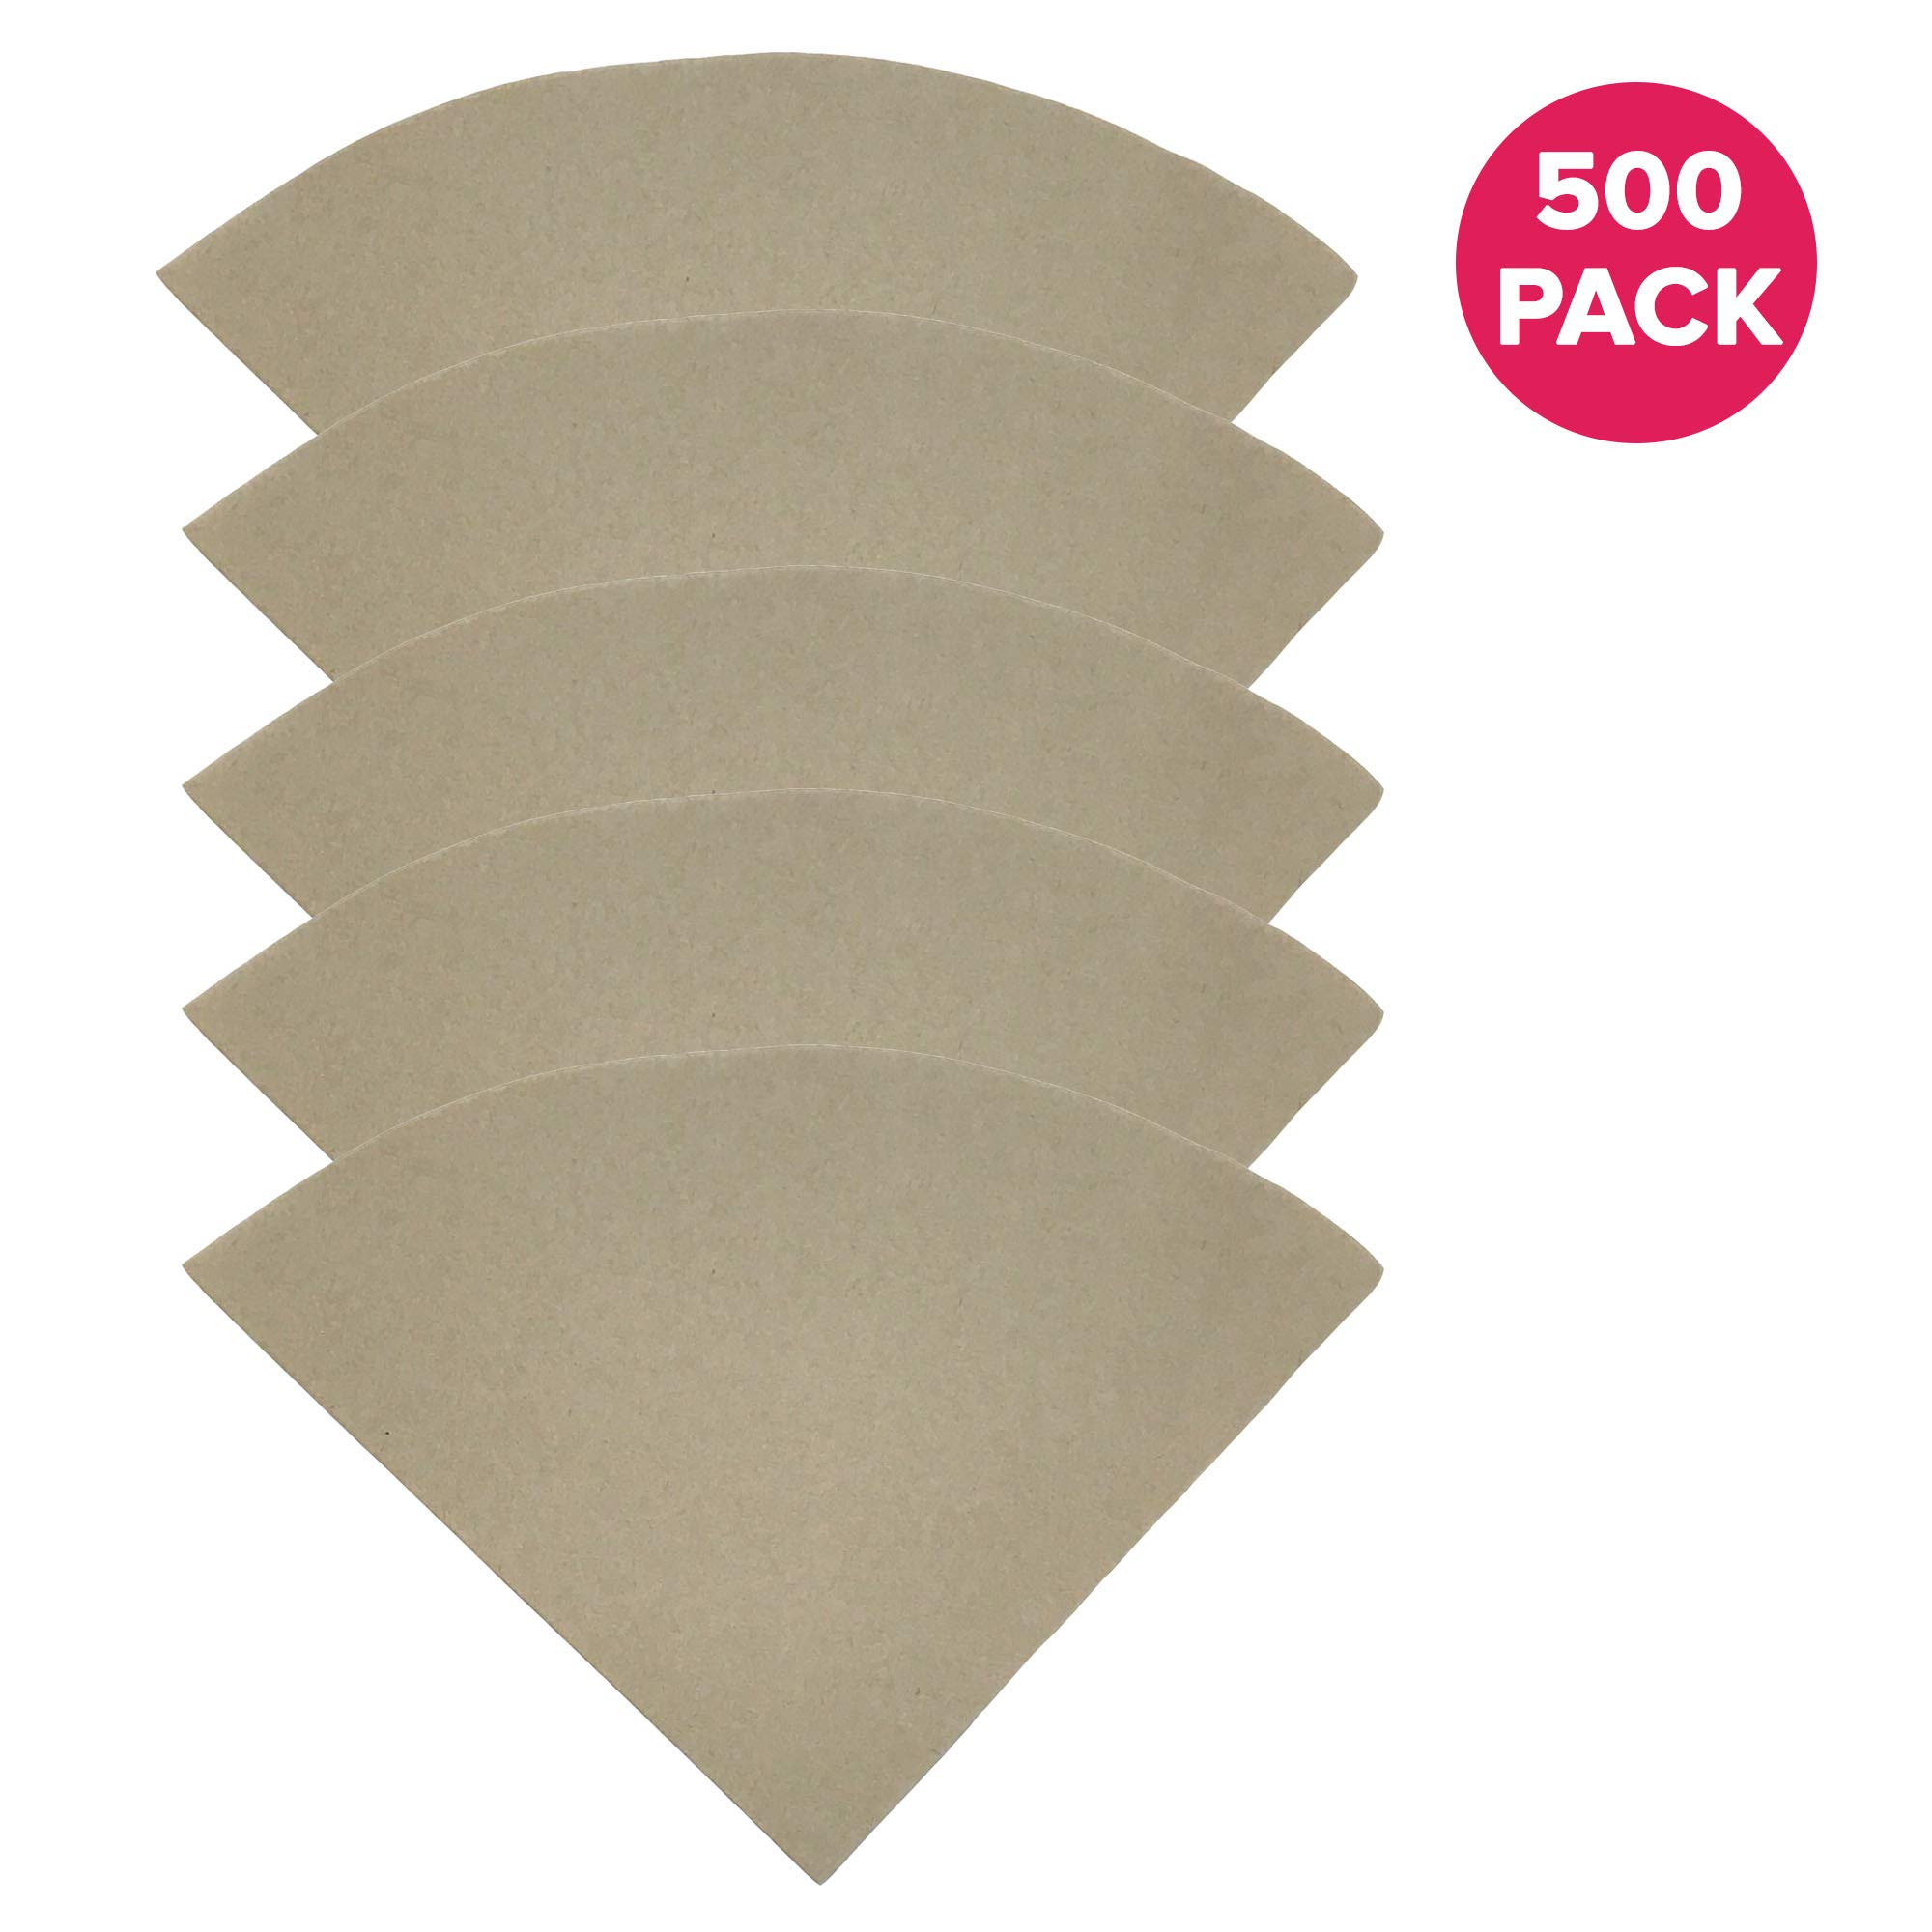 Think Crucial Compatible Replacement Unbleached Paper Coffee Filters For 6, 8 & 10 Cup Chemex-Brand Coffee Makers (500 Pack)